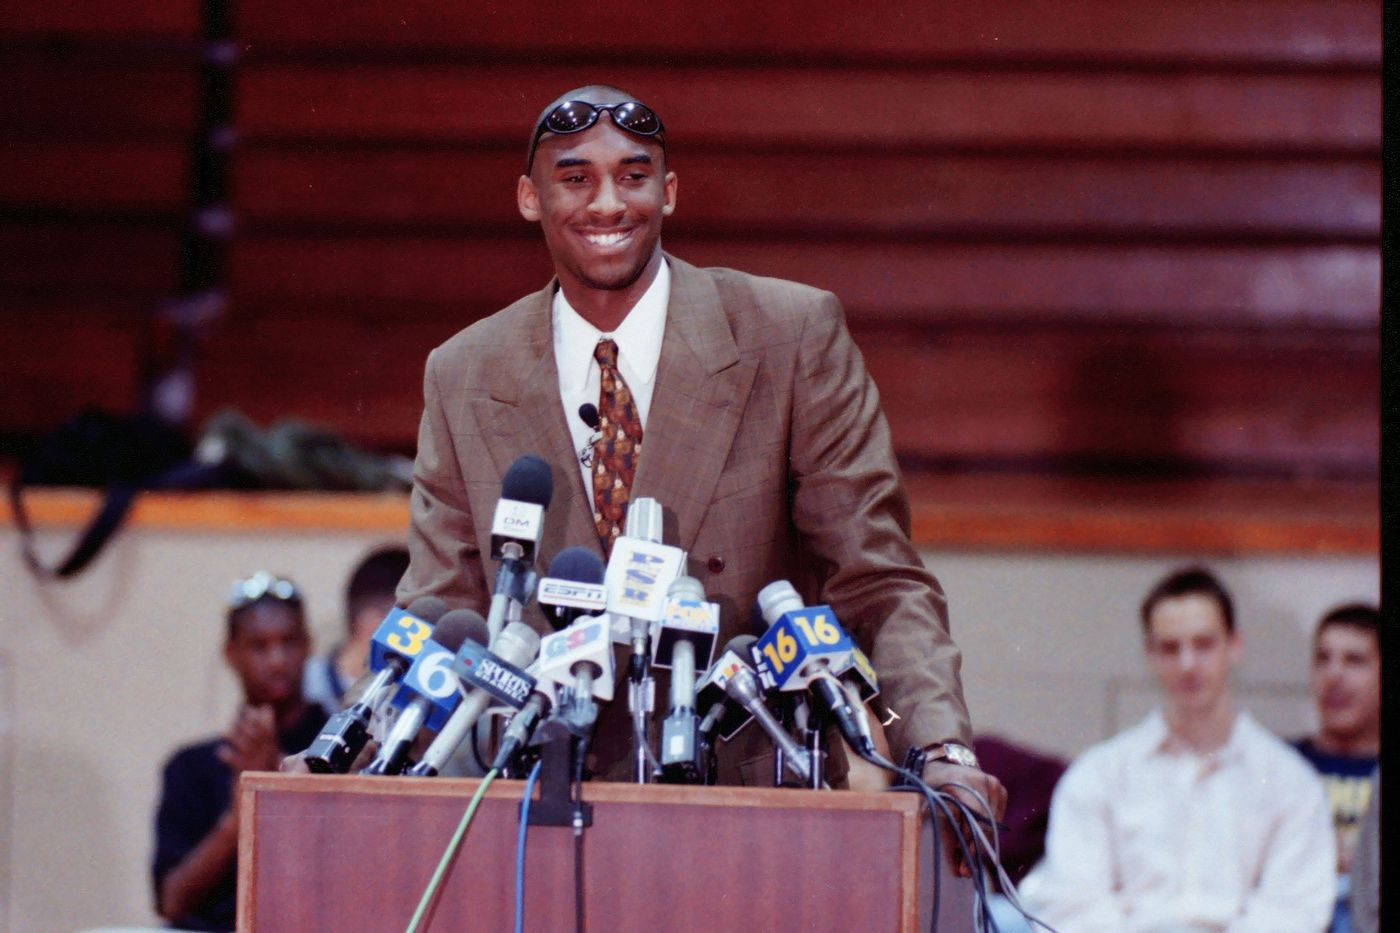 Kobe Bryant on the day he announced he is headed to the NBA, at Lower Merion High School, in April 1996.